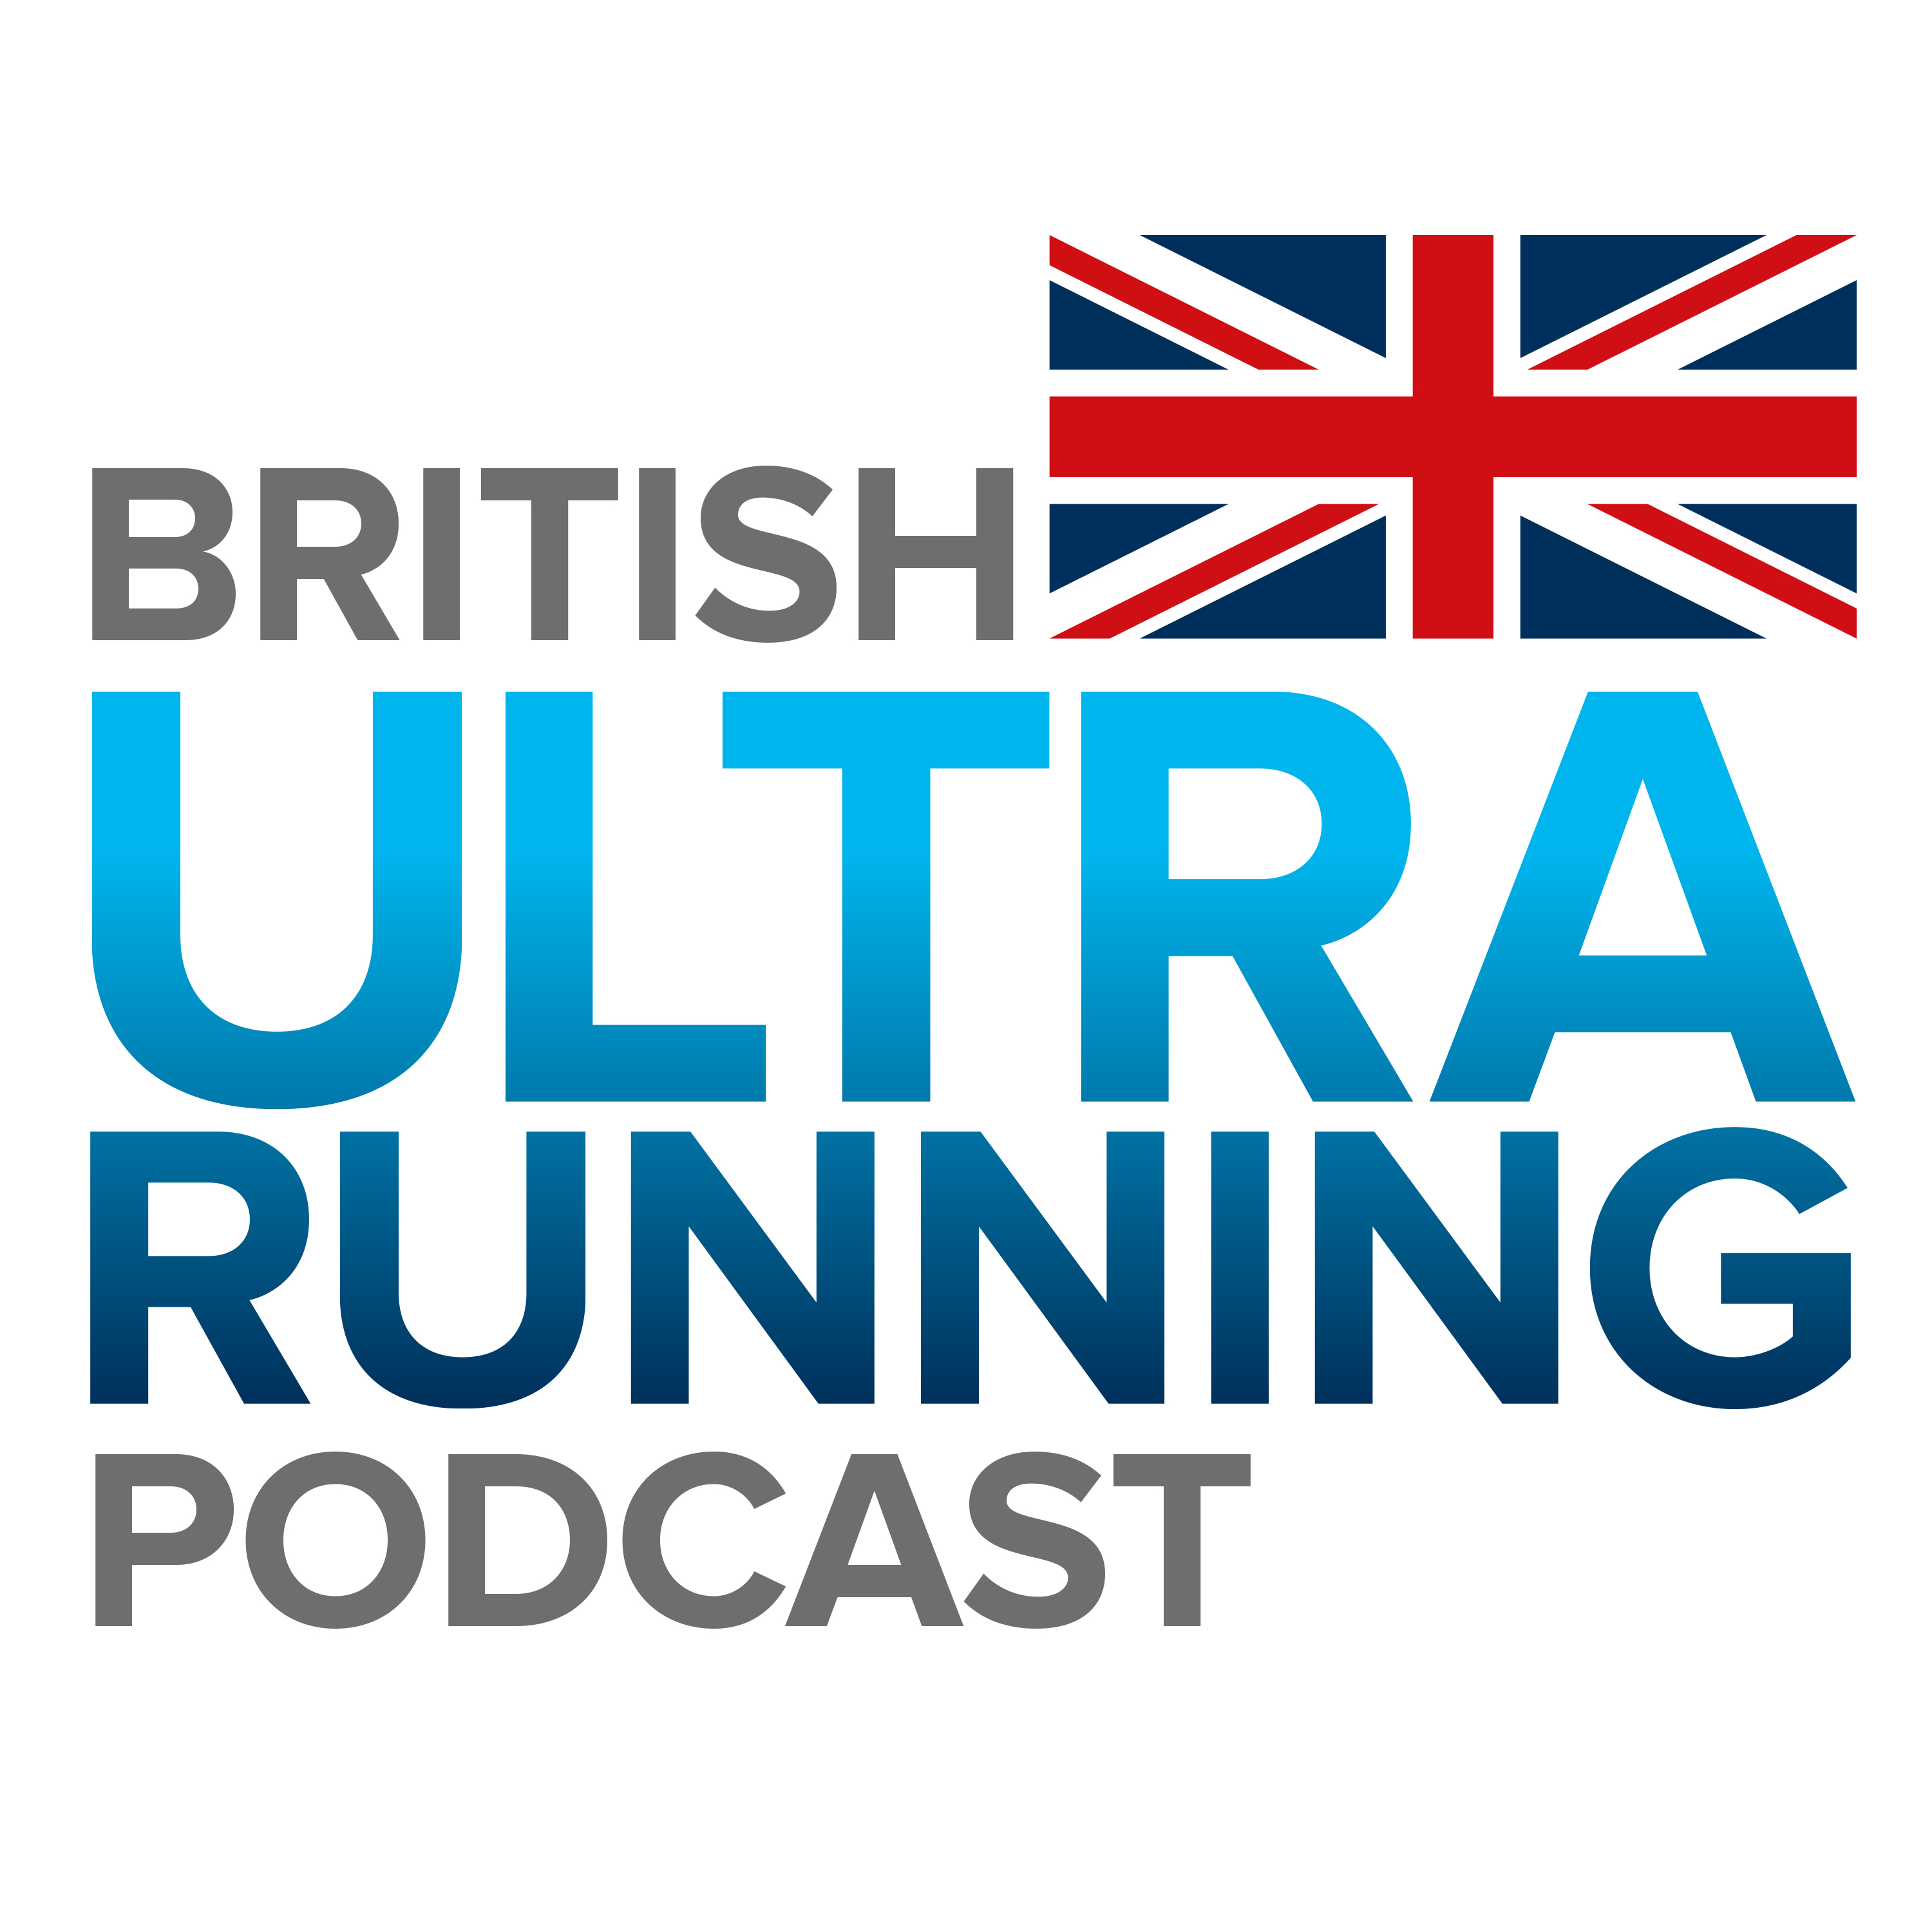 British Ultra Running Podcast